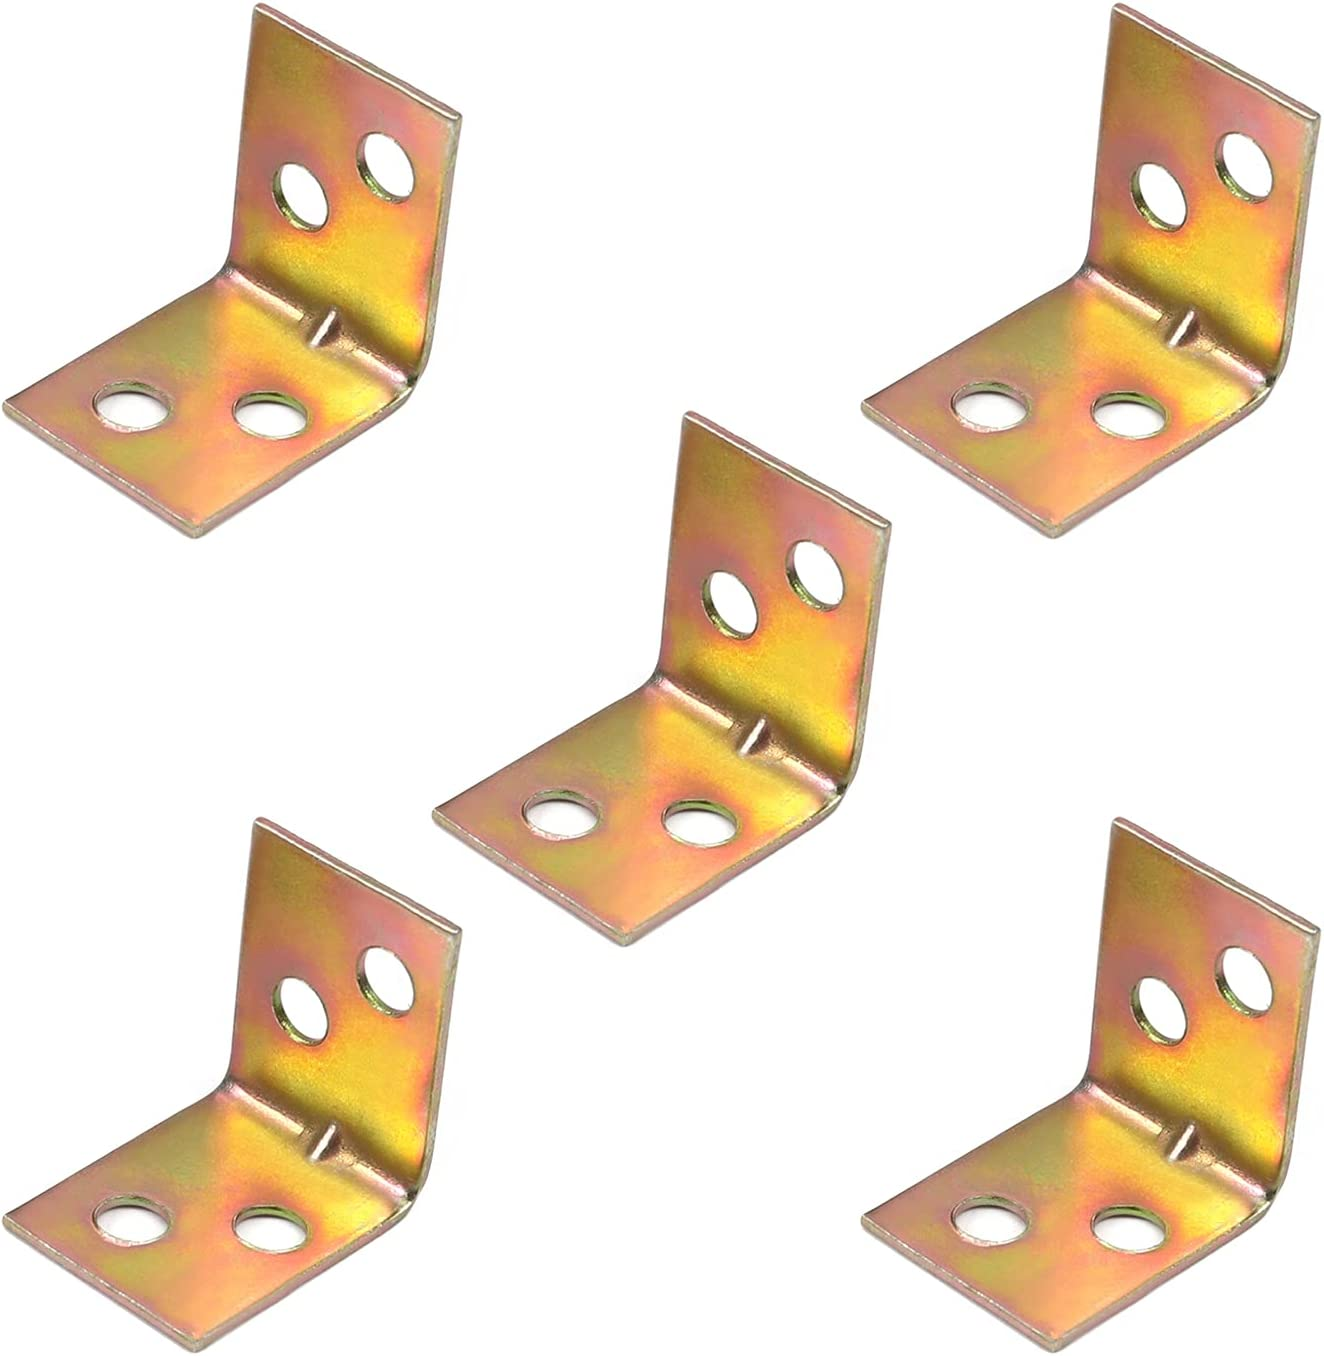 MroMax 50PCS Right Angle It is very popular Now free shipping Bracket Corner 0.67